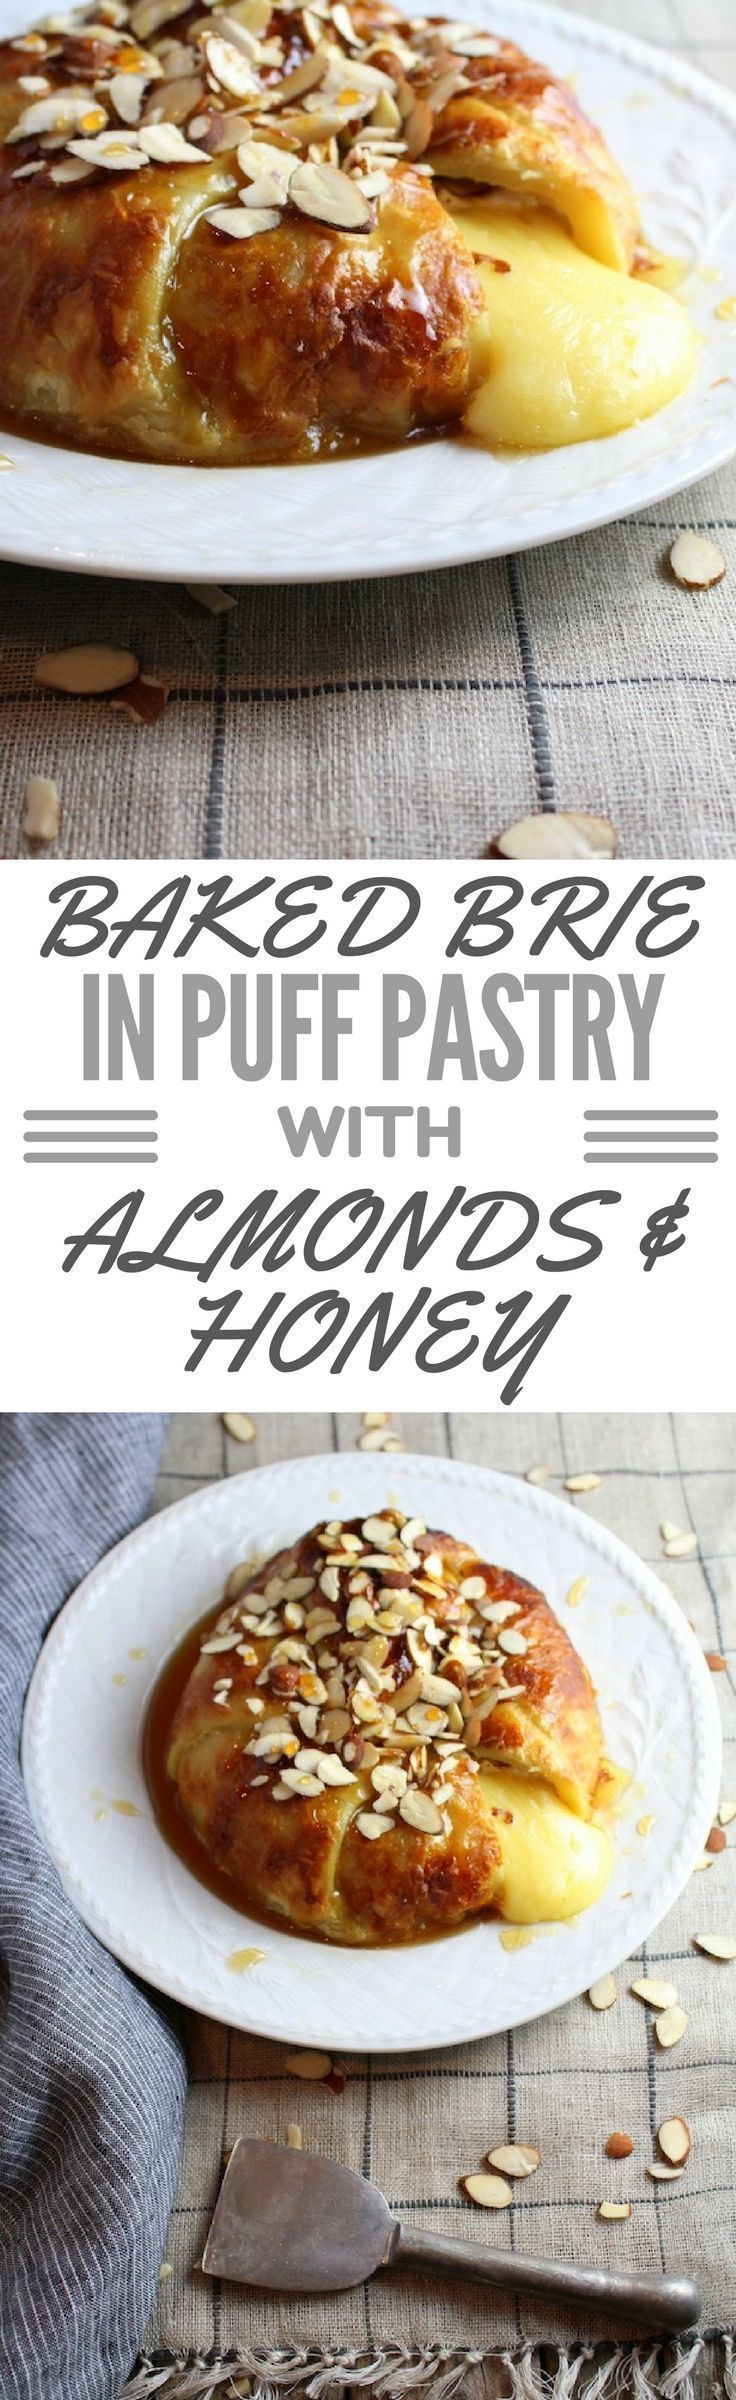 Easy christmas appetizer! Baked Brie in Puff Pastry with sliced Almonds and Honey drizzle.  http://tasteandsee.com